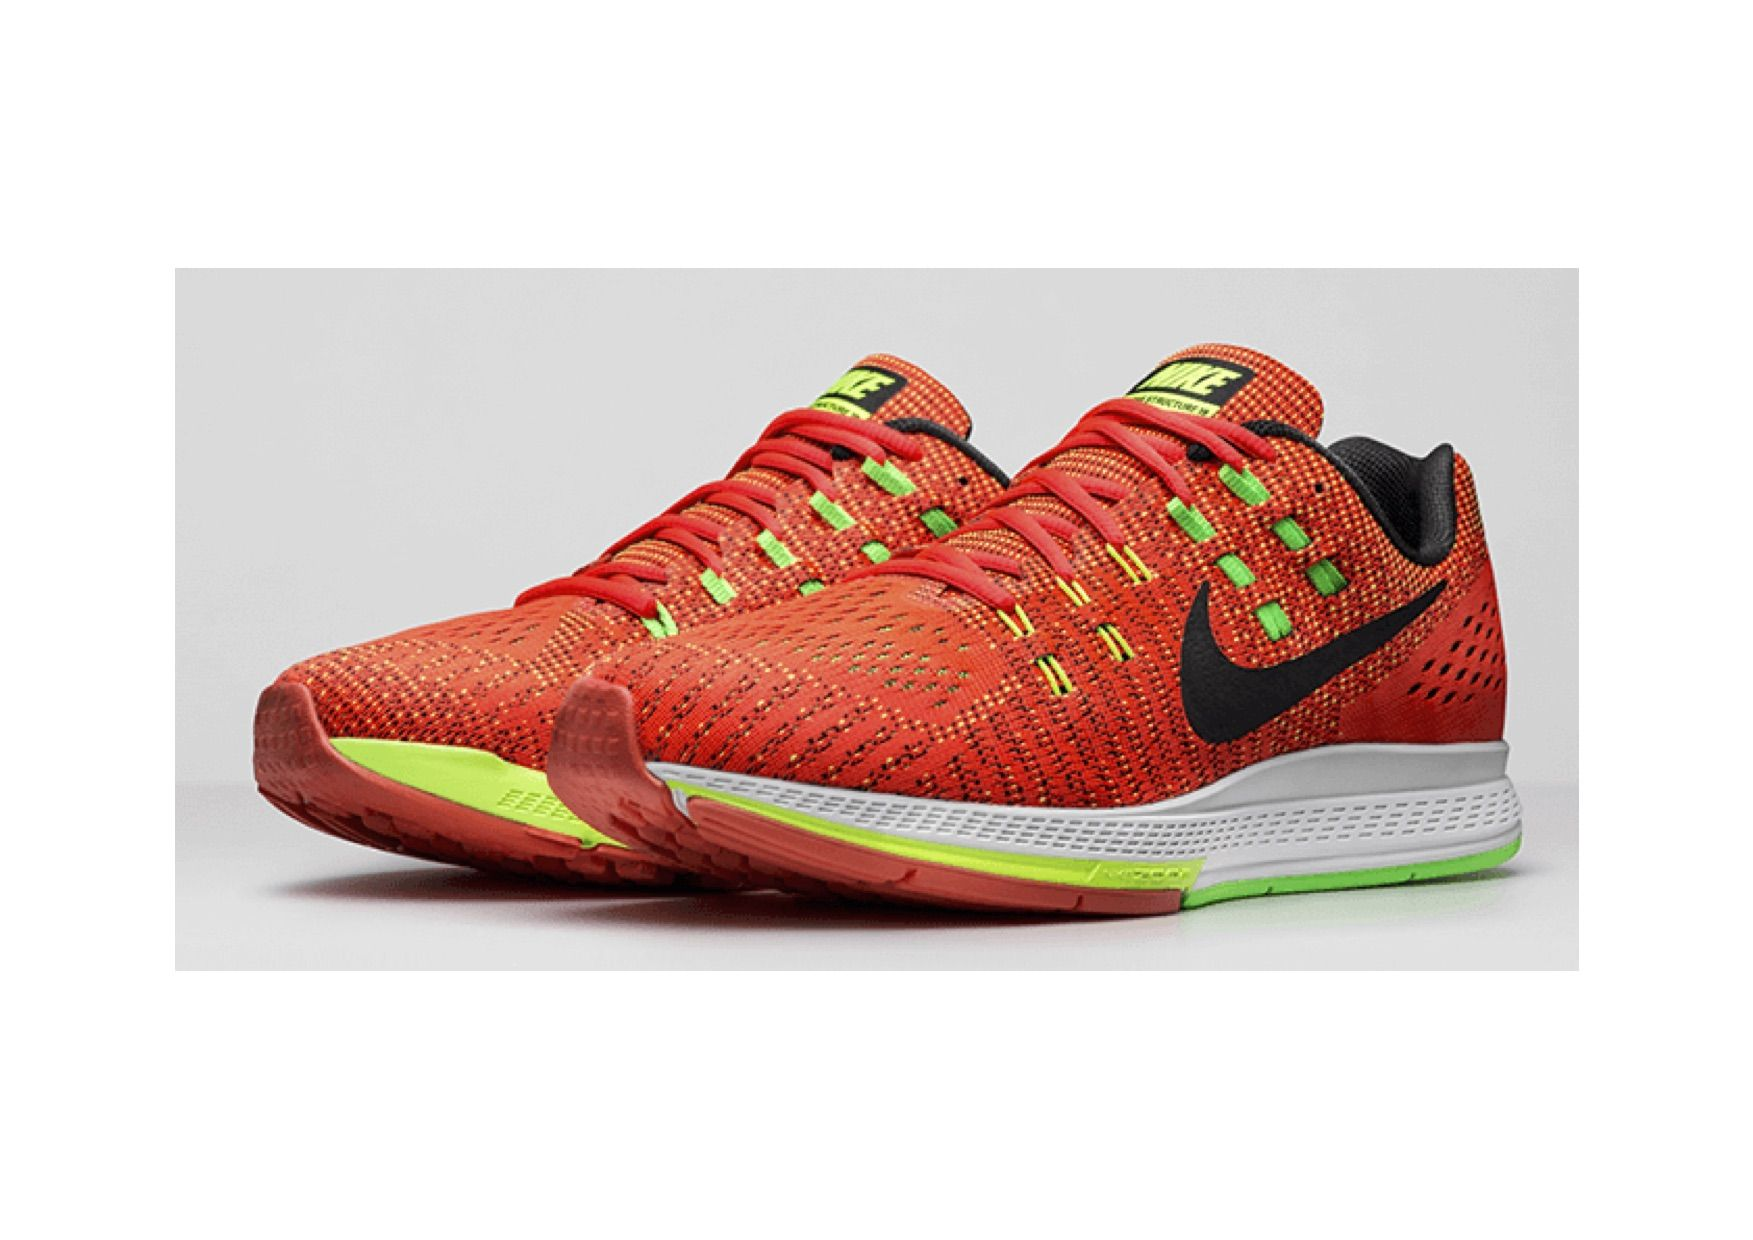 25384215113a ... australia nike air zoom structure 19 mens running shoes 806580 607 size  8 new womens aa422 ...